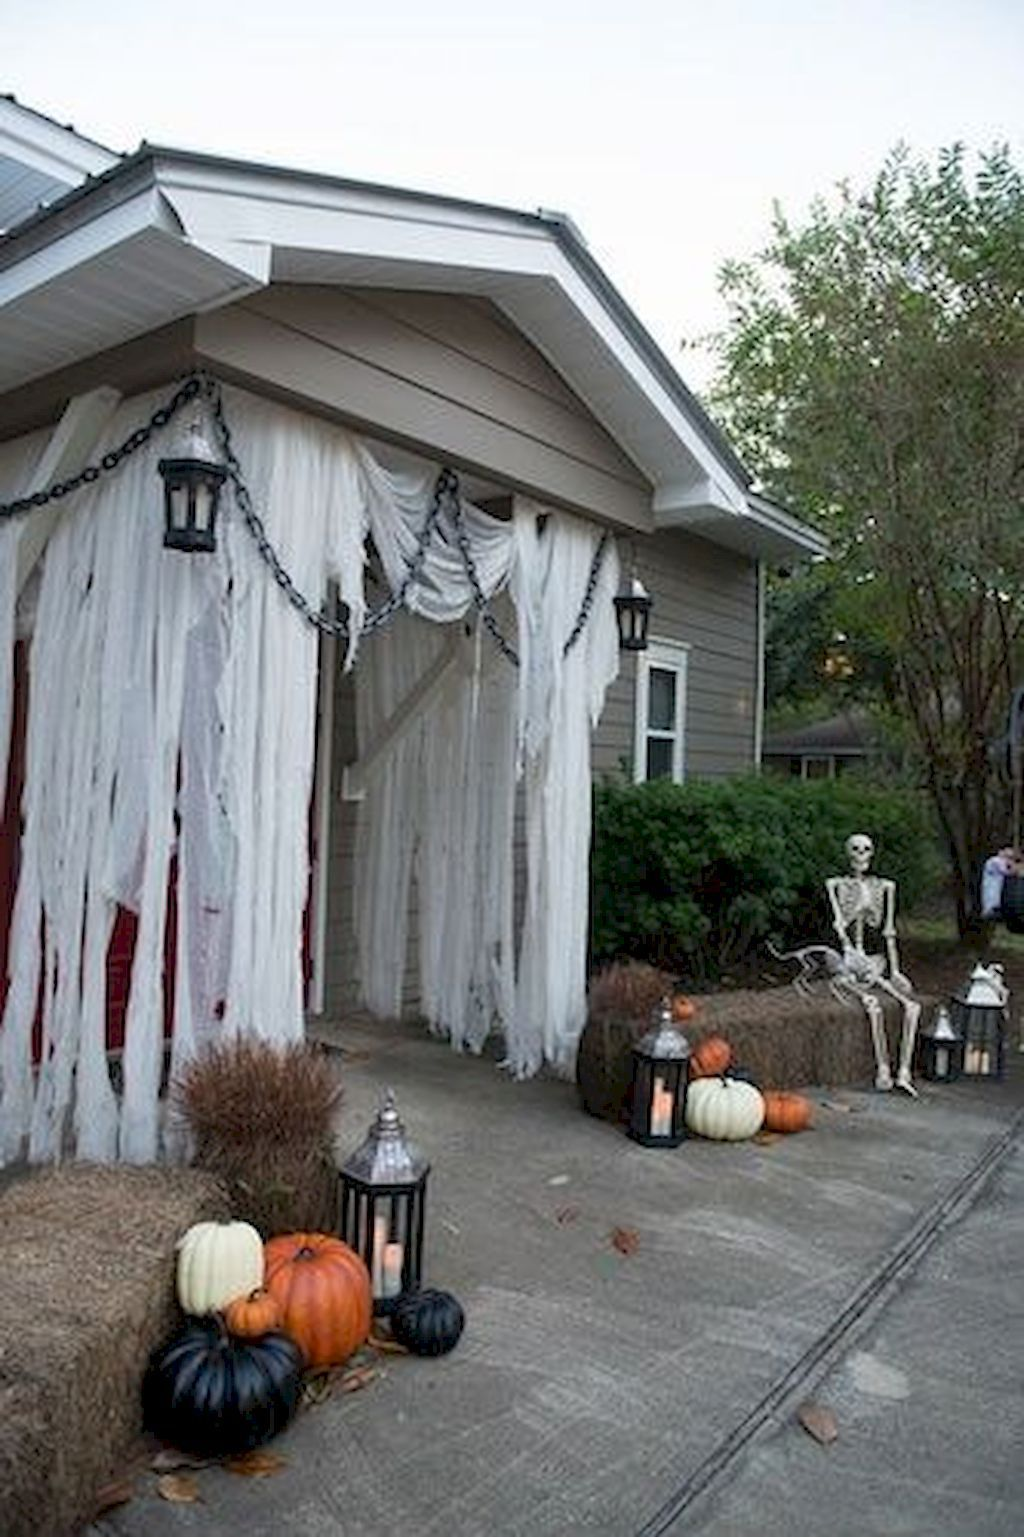 80 + CREEPY OUTDOOR HALLOWEEN DECORATION IDEAS (49 halloween props - Pinterest Outdoor Halloween Decorations